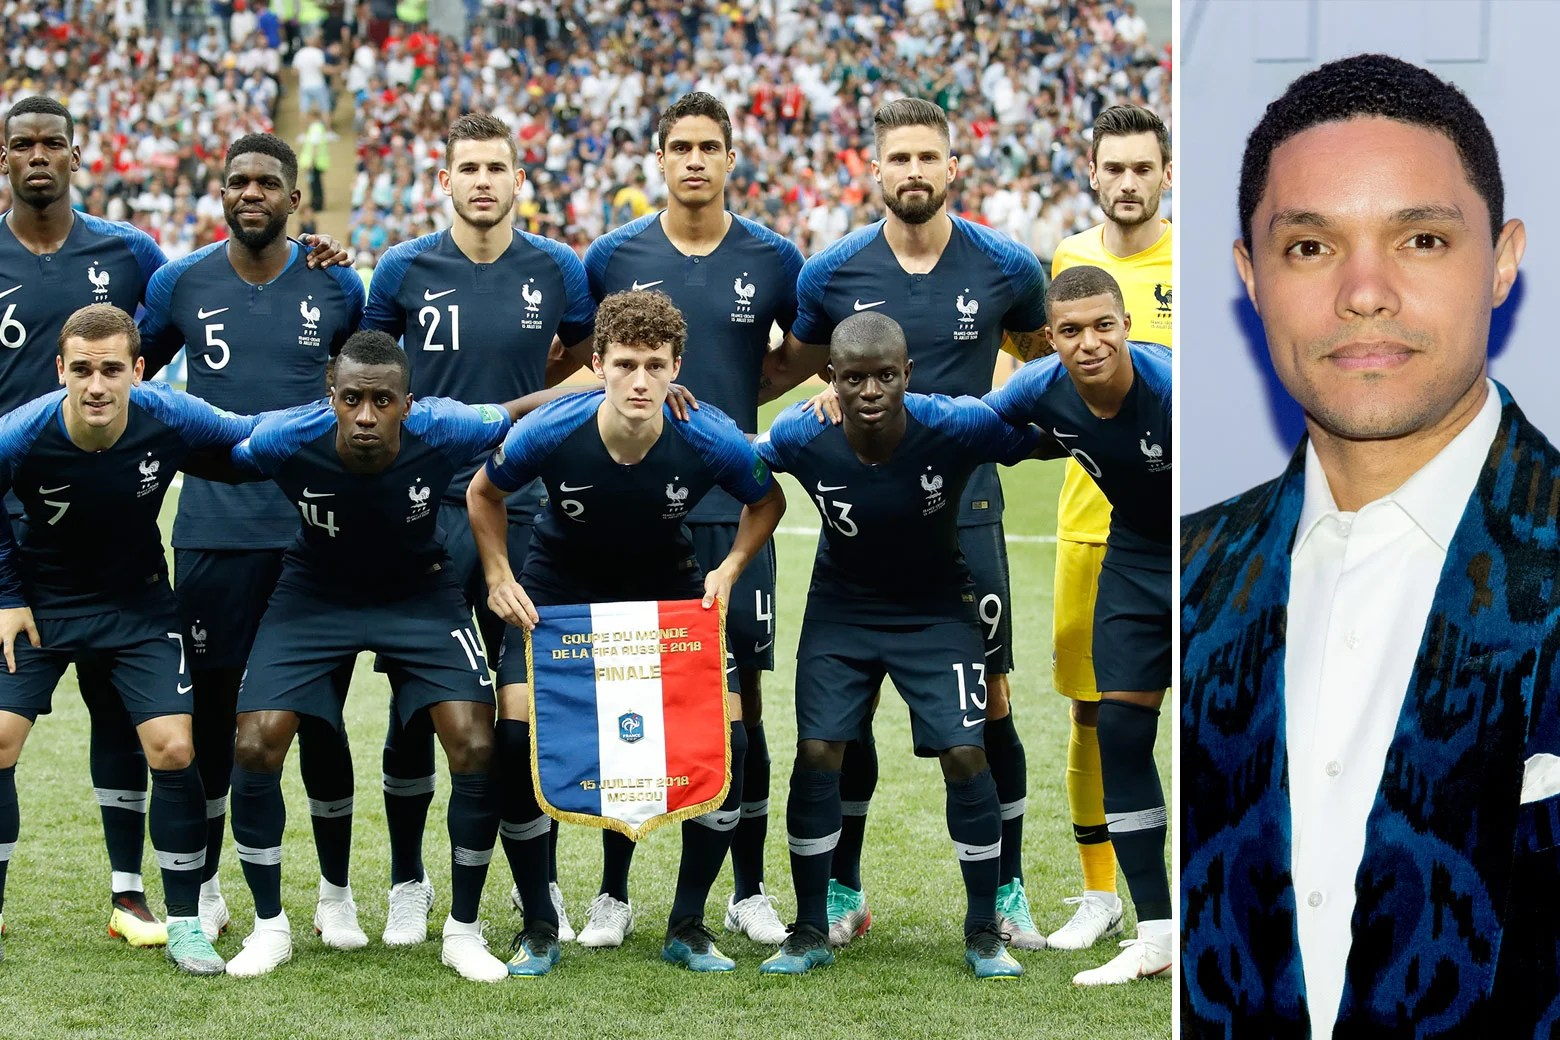 Only a true lifelong nfl fan will remember all of these logos! Trevor Noah And The French Ambassador Both Missed The Mark In Their Argument Over The World Cup Team S Africanness